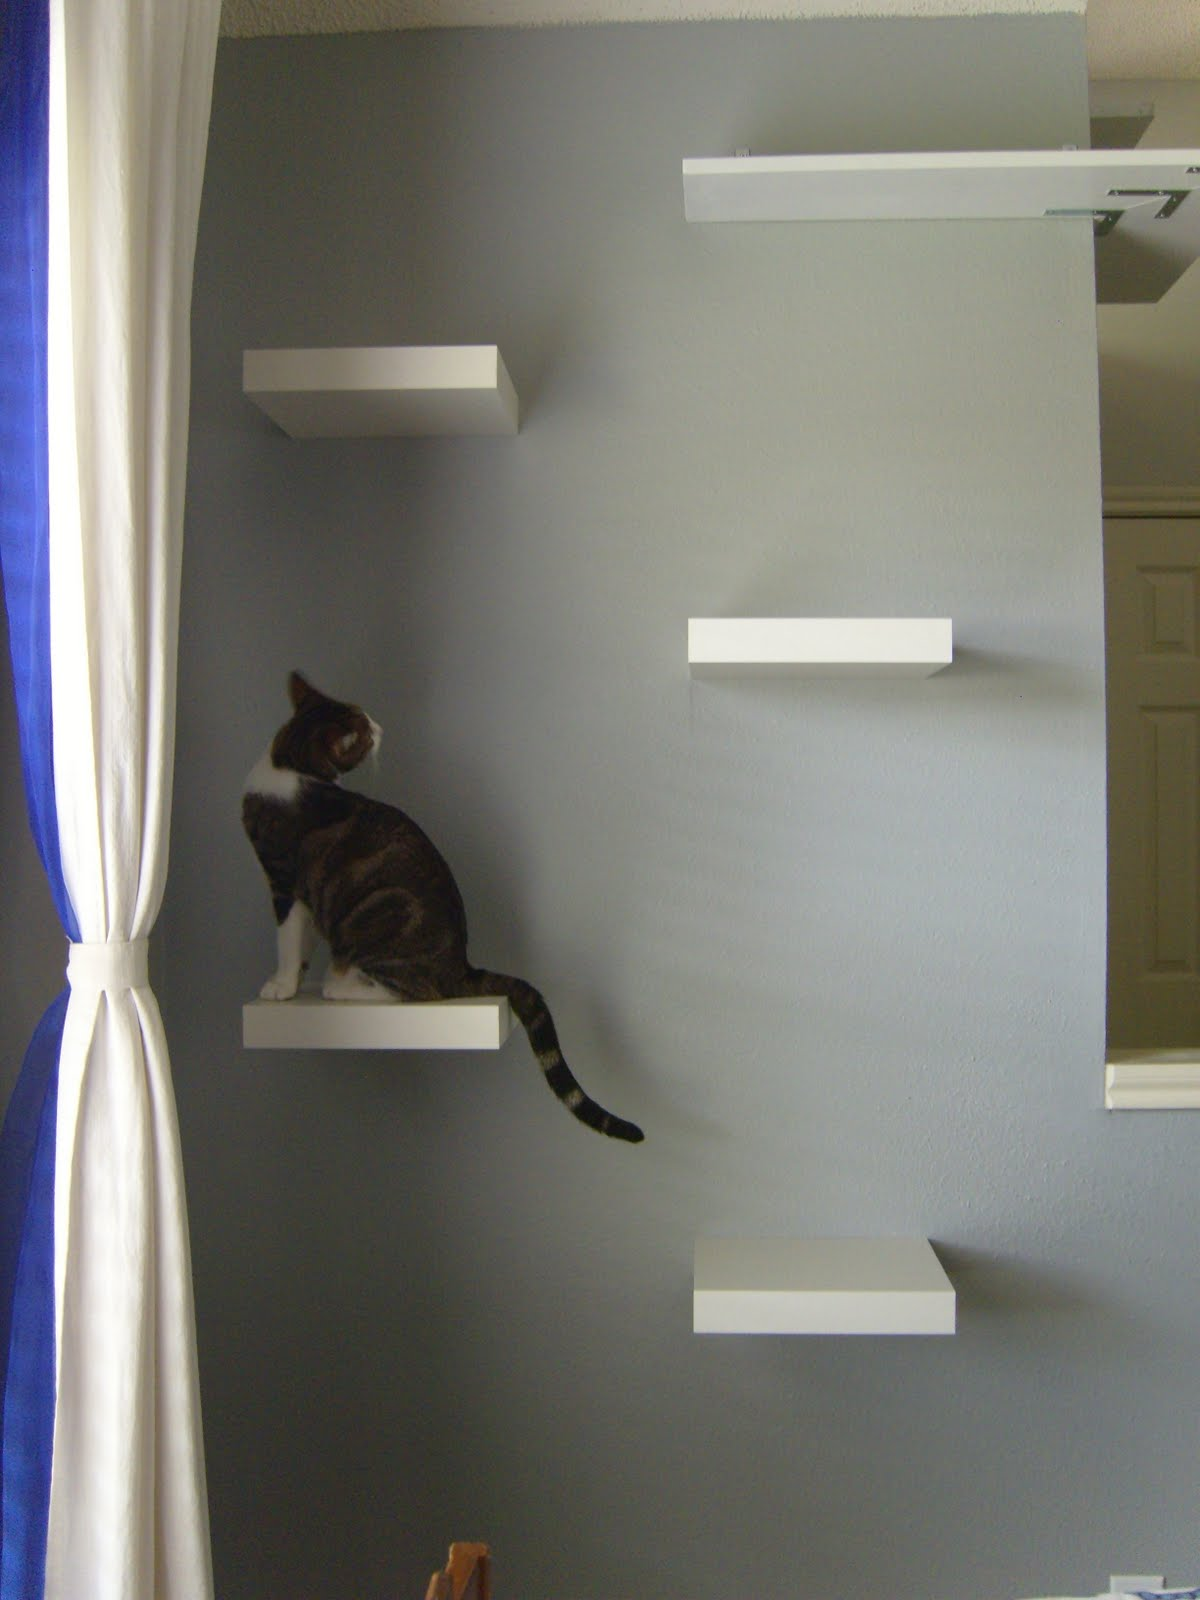 armstrong drive cat stairs in the dining room. Black Bedroom Furniture Sets. Home Design Ideas